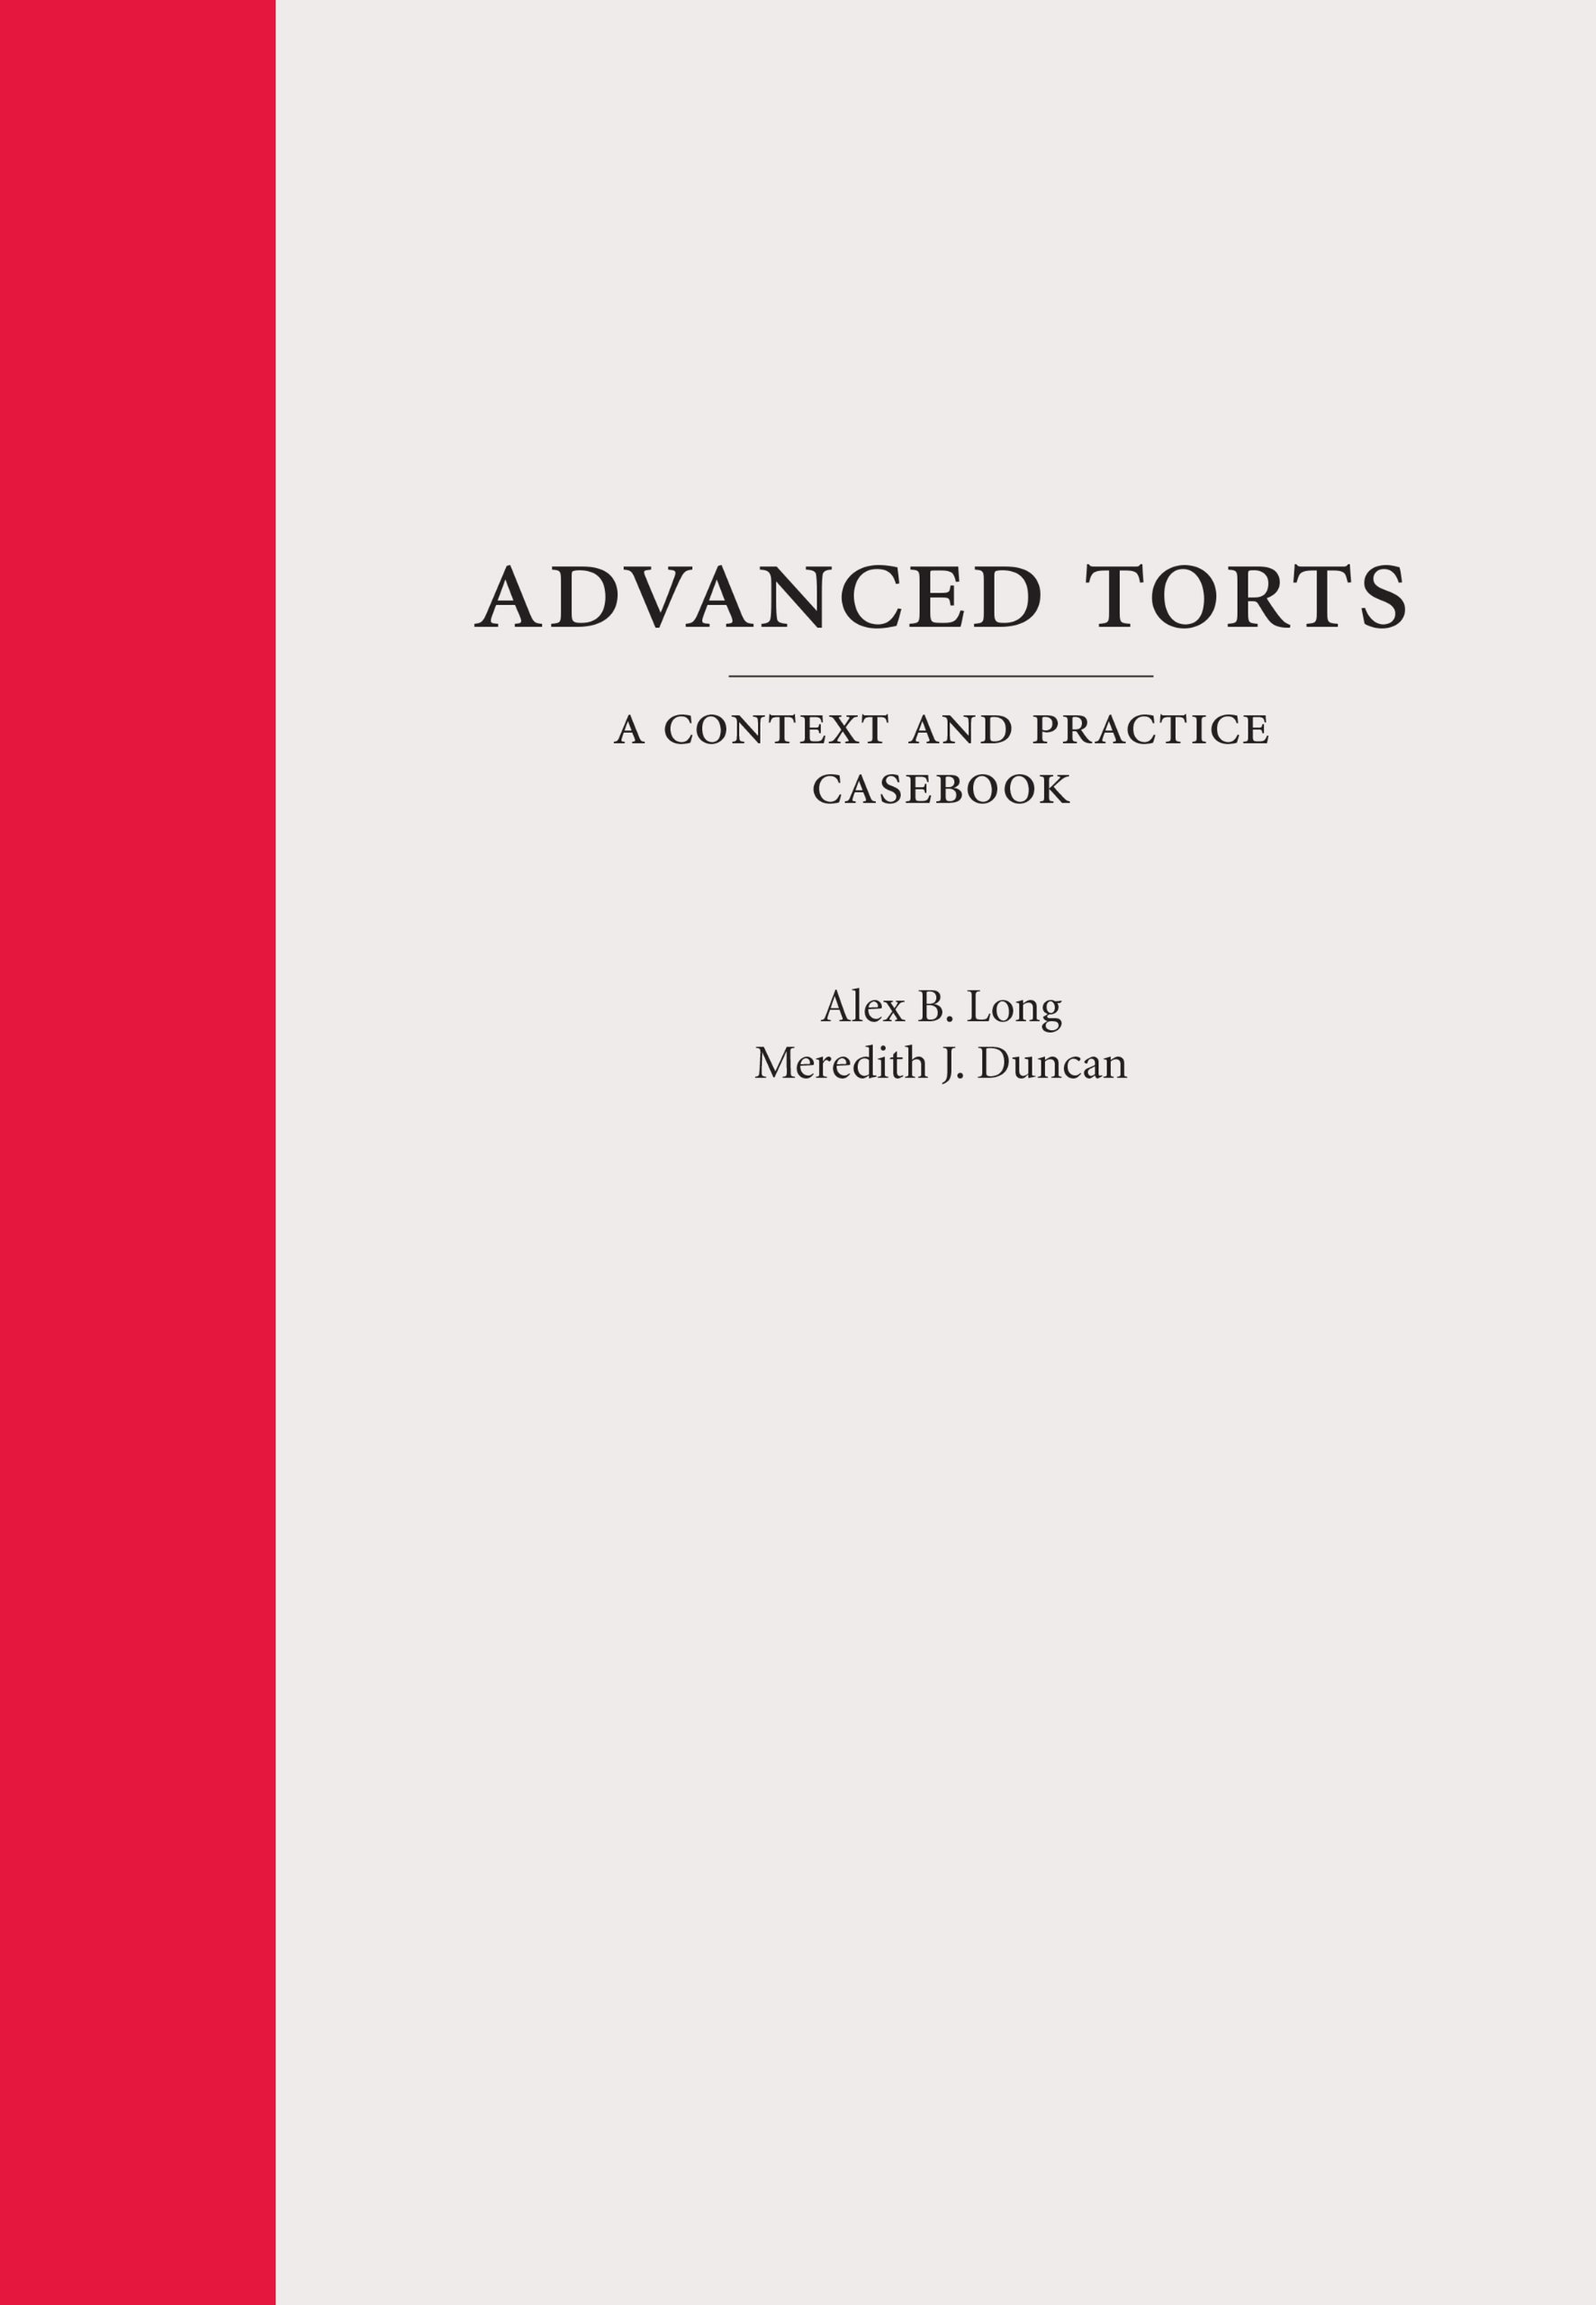 Advanced Torts: A Context and Practice Casebook: Amazon.co.uk: Alex B.  Long, Meredith J. Duncan: 9781611630992: Books